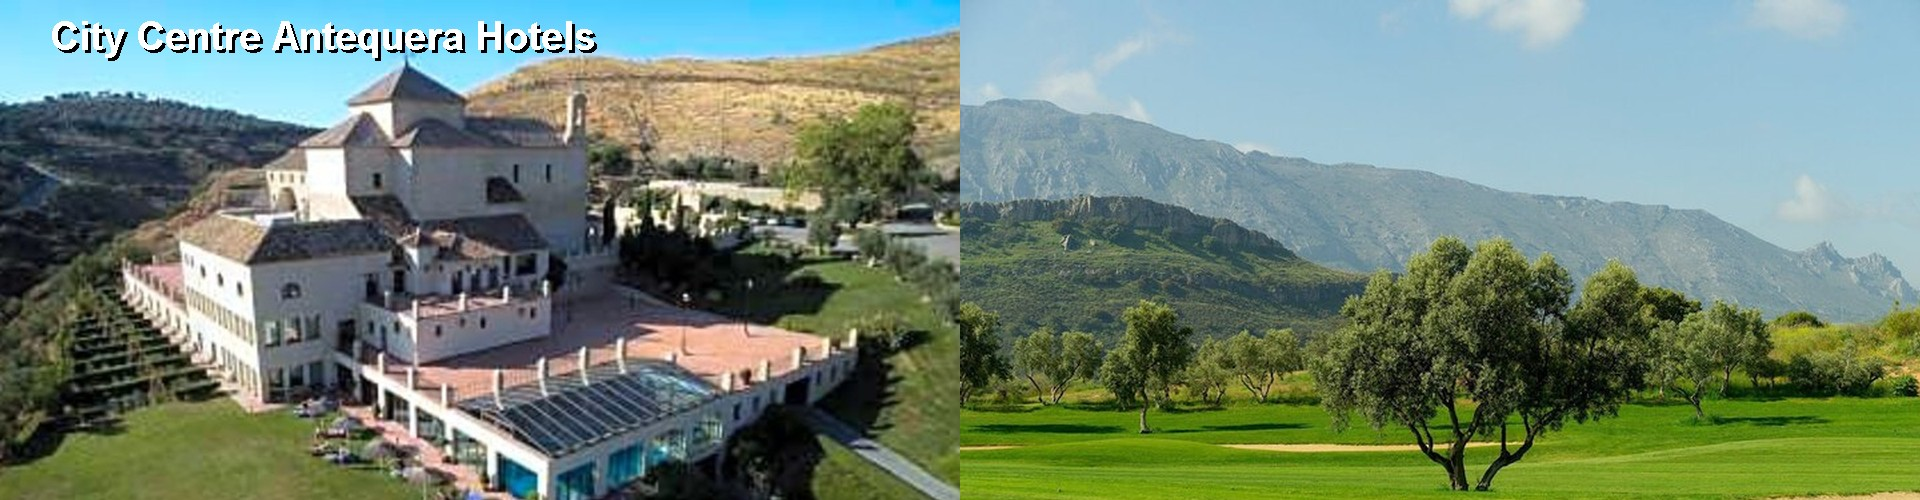 5 Best Hotels near City Centre Antequera